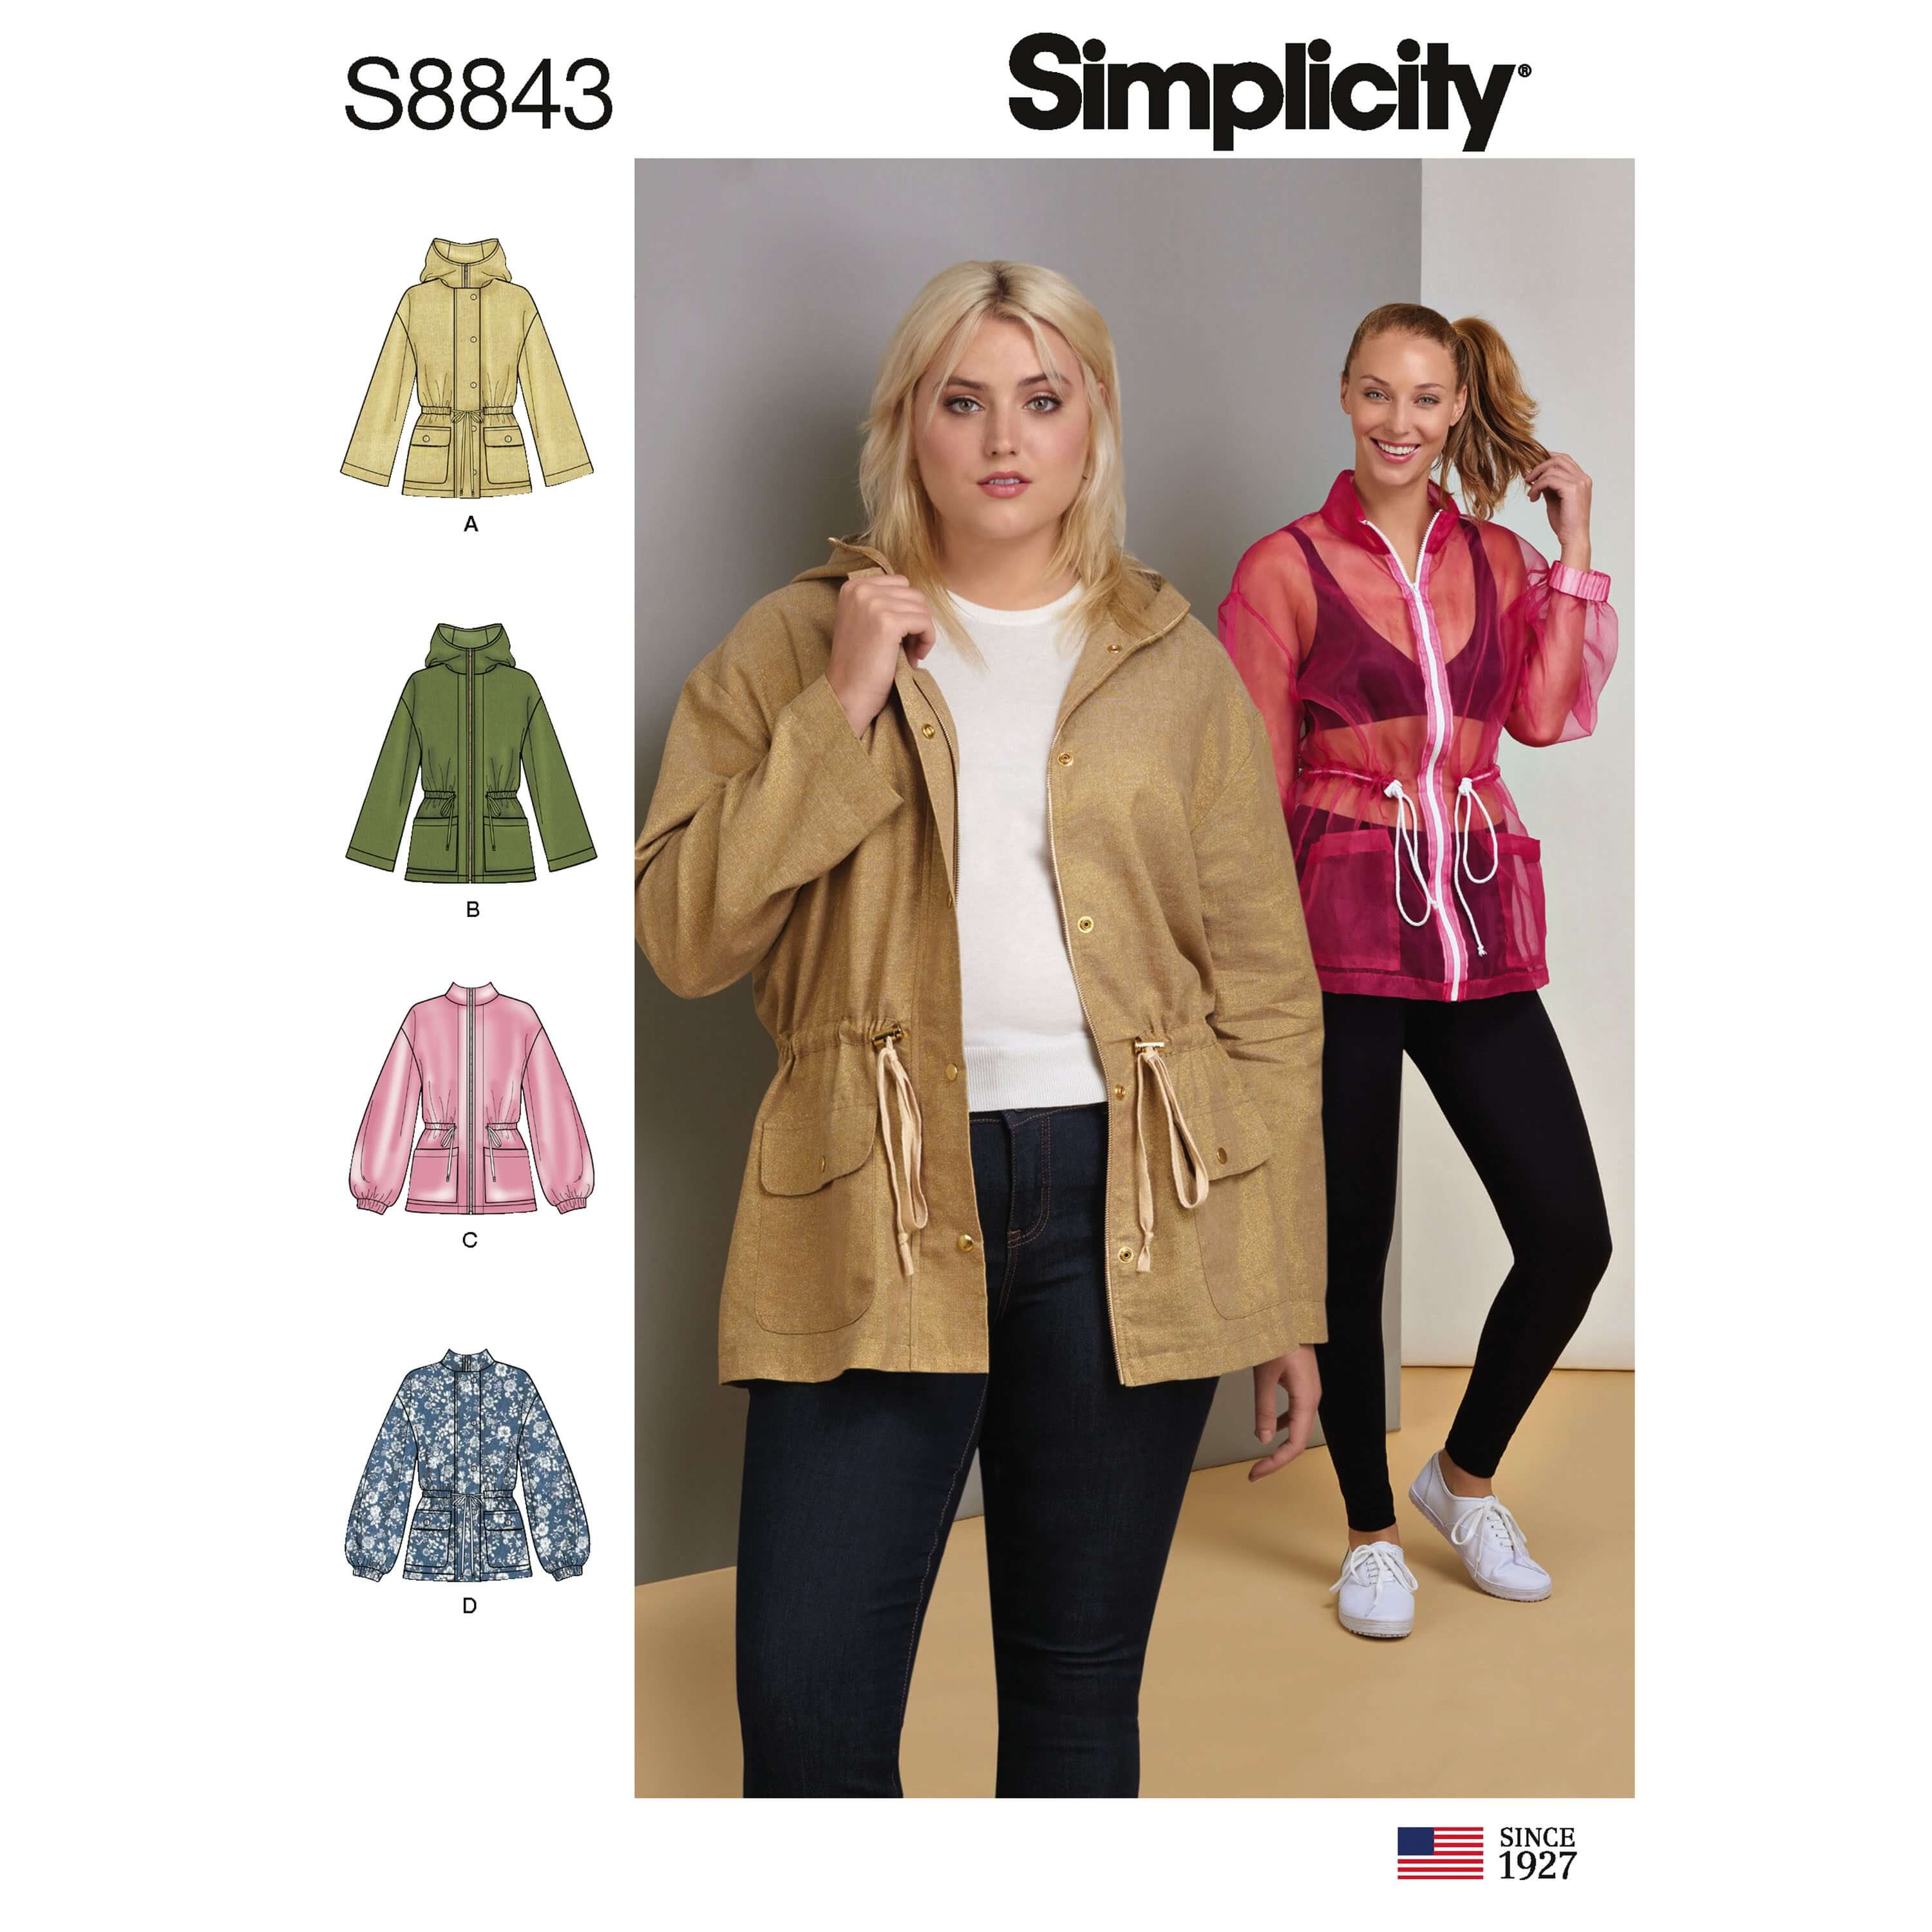 Simplicity Sewing Pattern 8843 Misses' Anorak Jacket